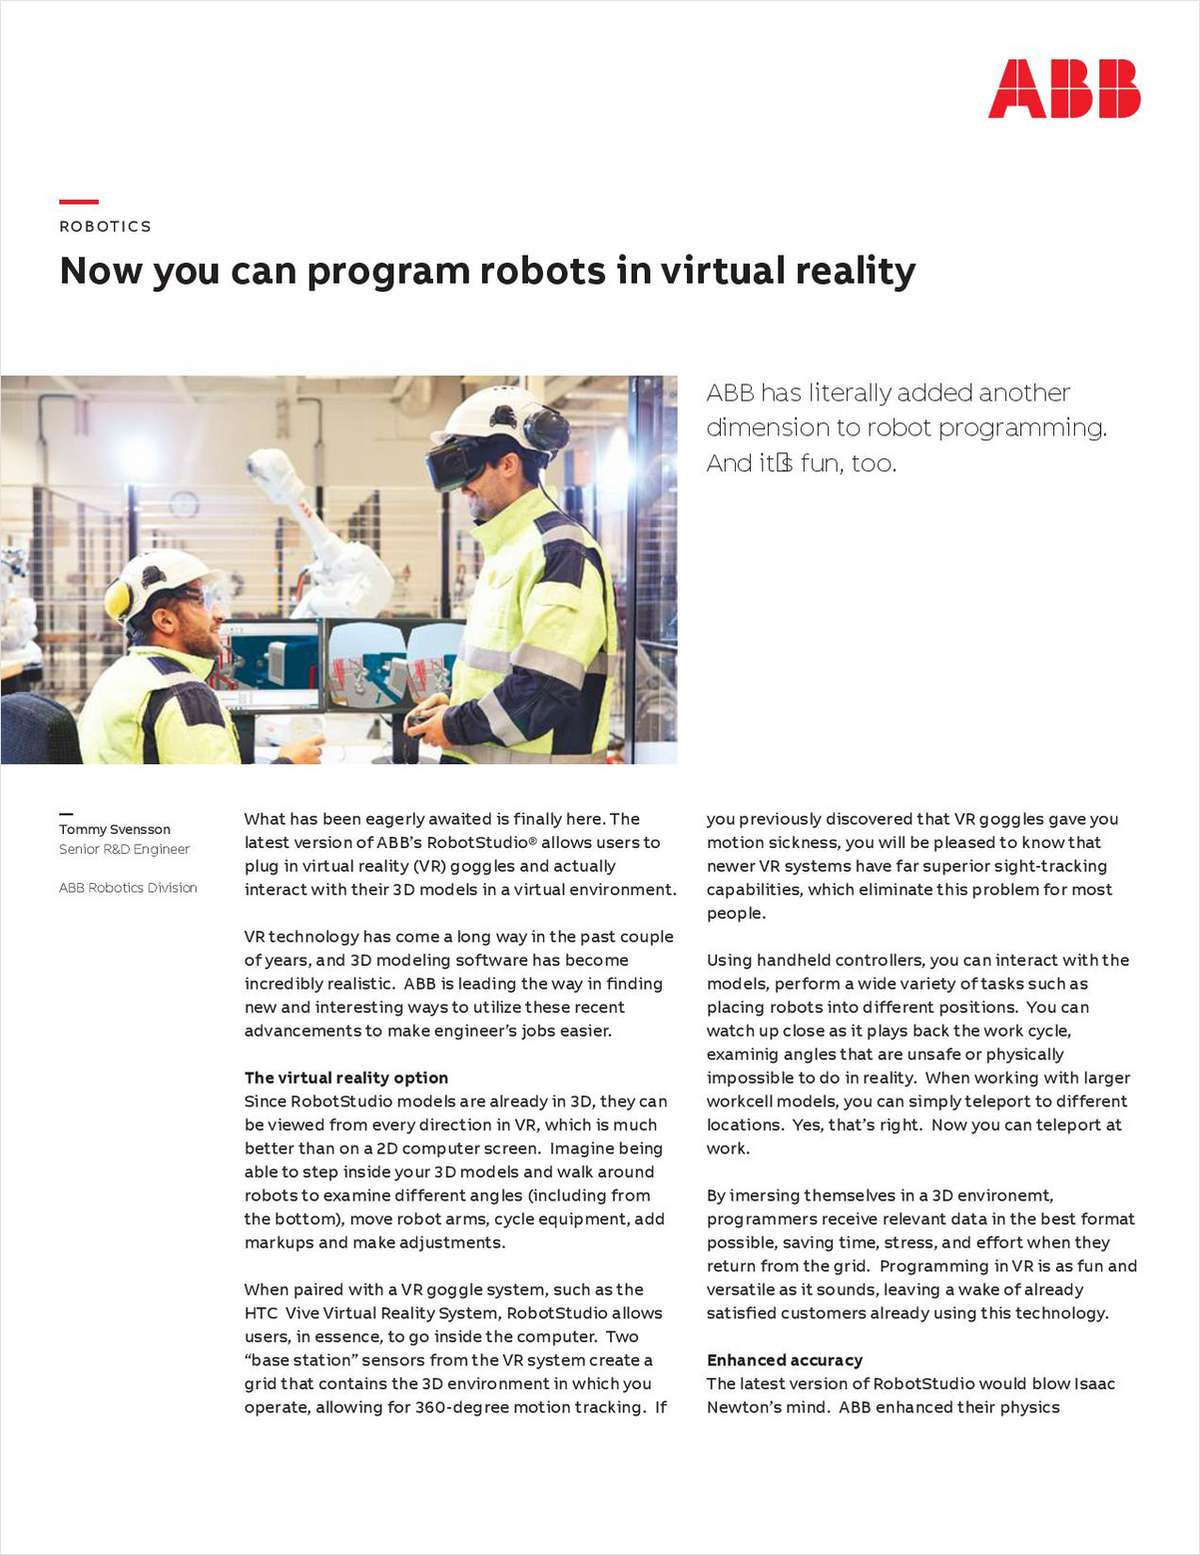 Now You Can Program Robots in Virtual Reality